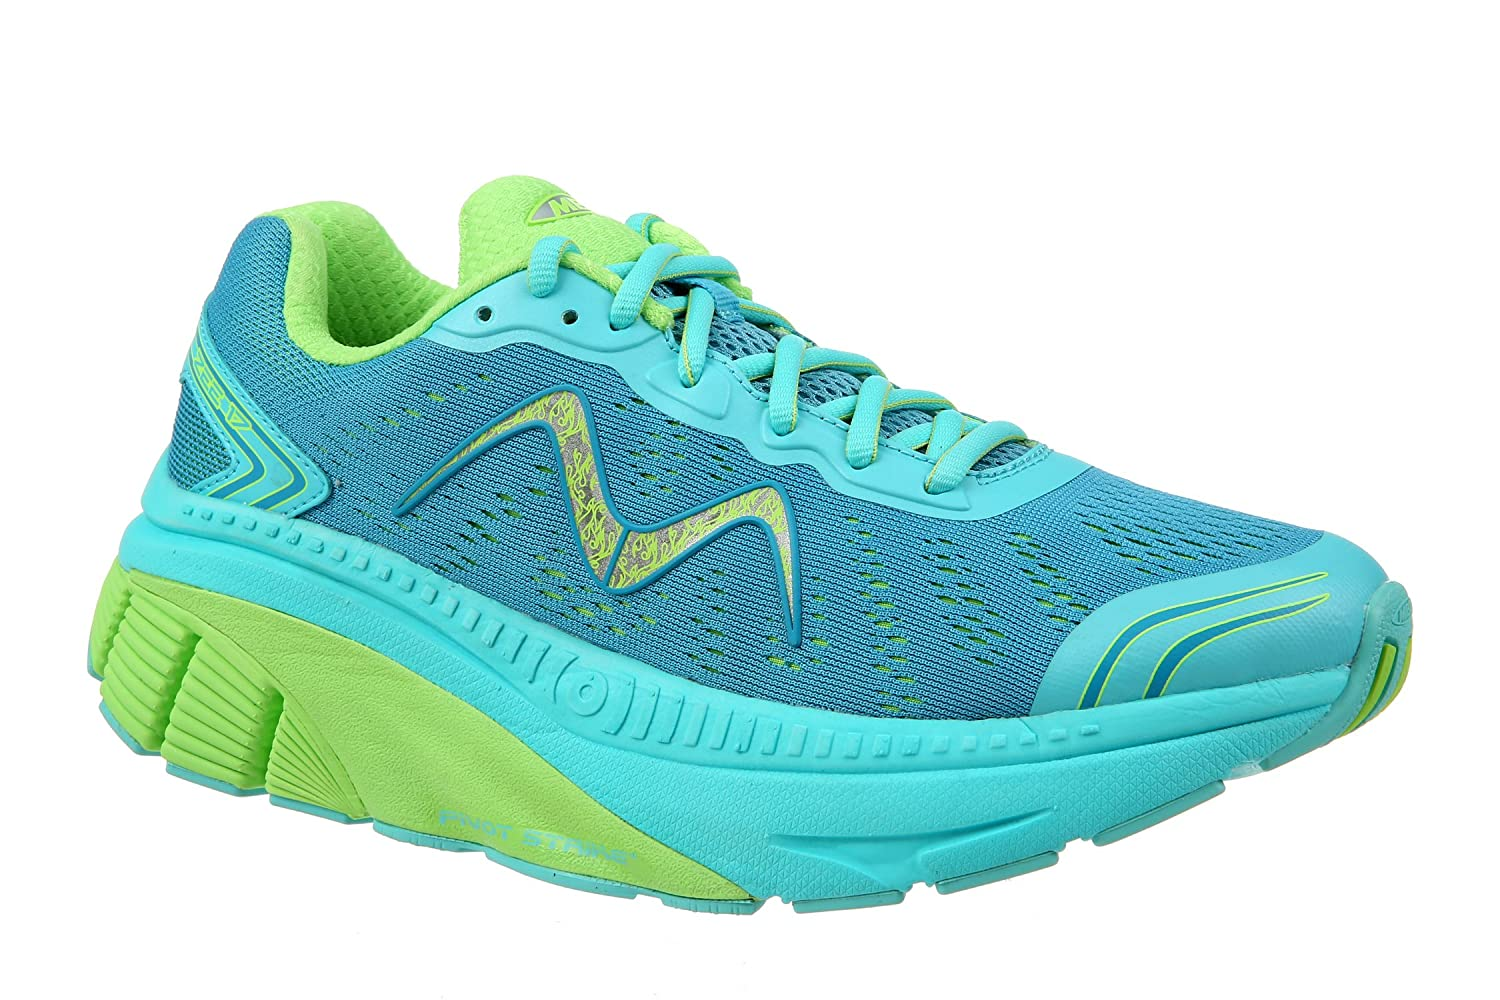 MBT Women's Zee 17 W Sneaker B01MZD27NG 11 Medium (B) US Woman|Teal/Green